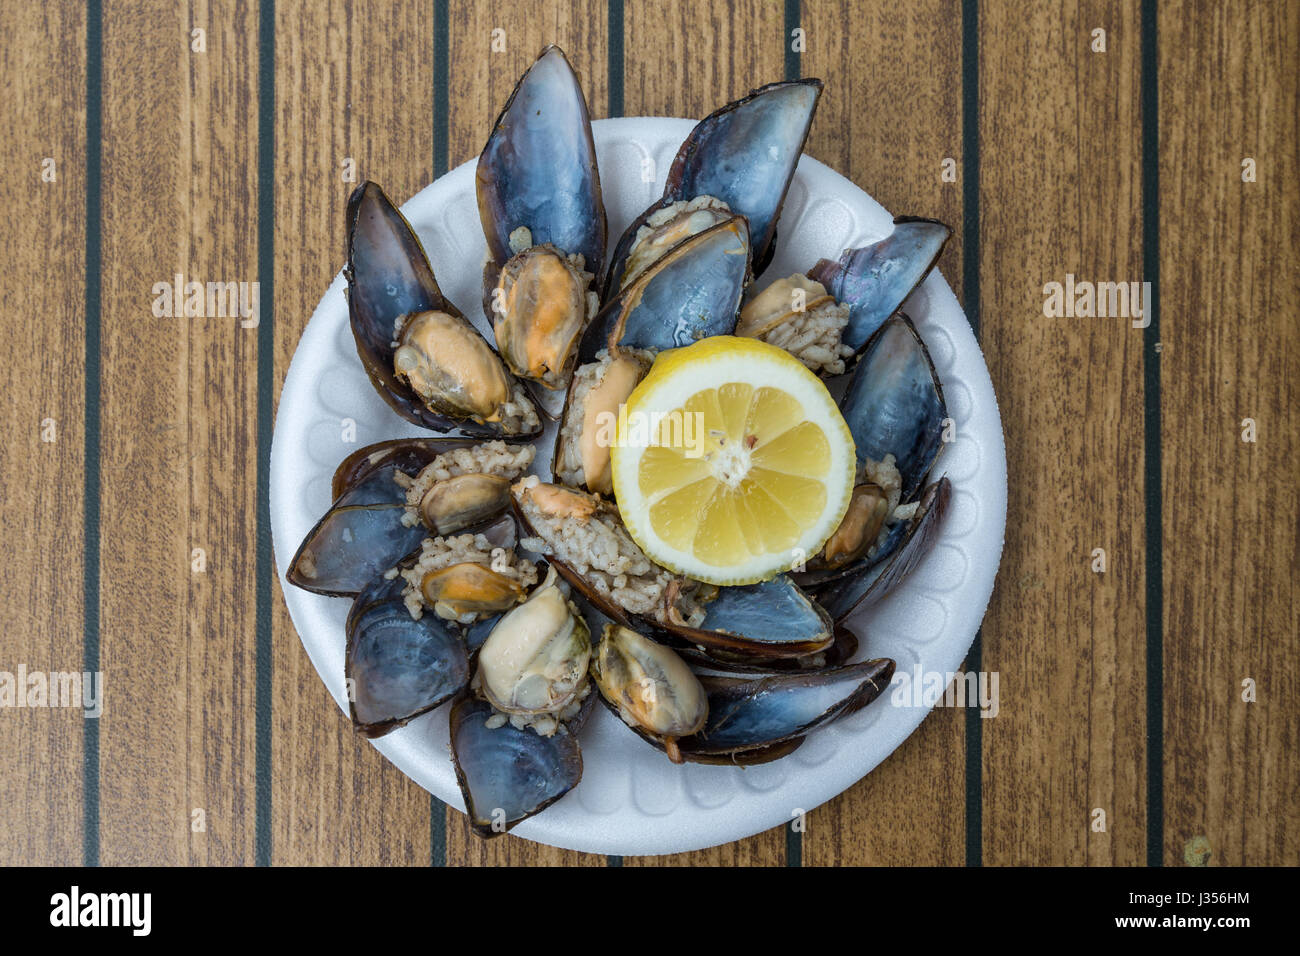 Stuffed mussels with lemon top view - Stock Image